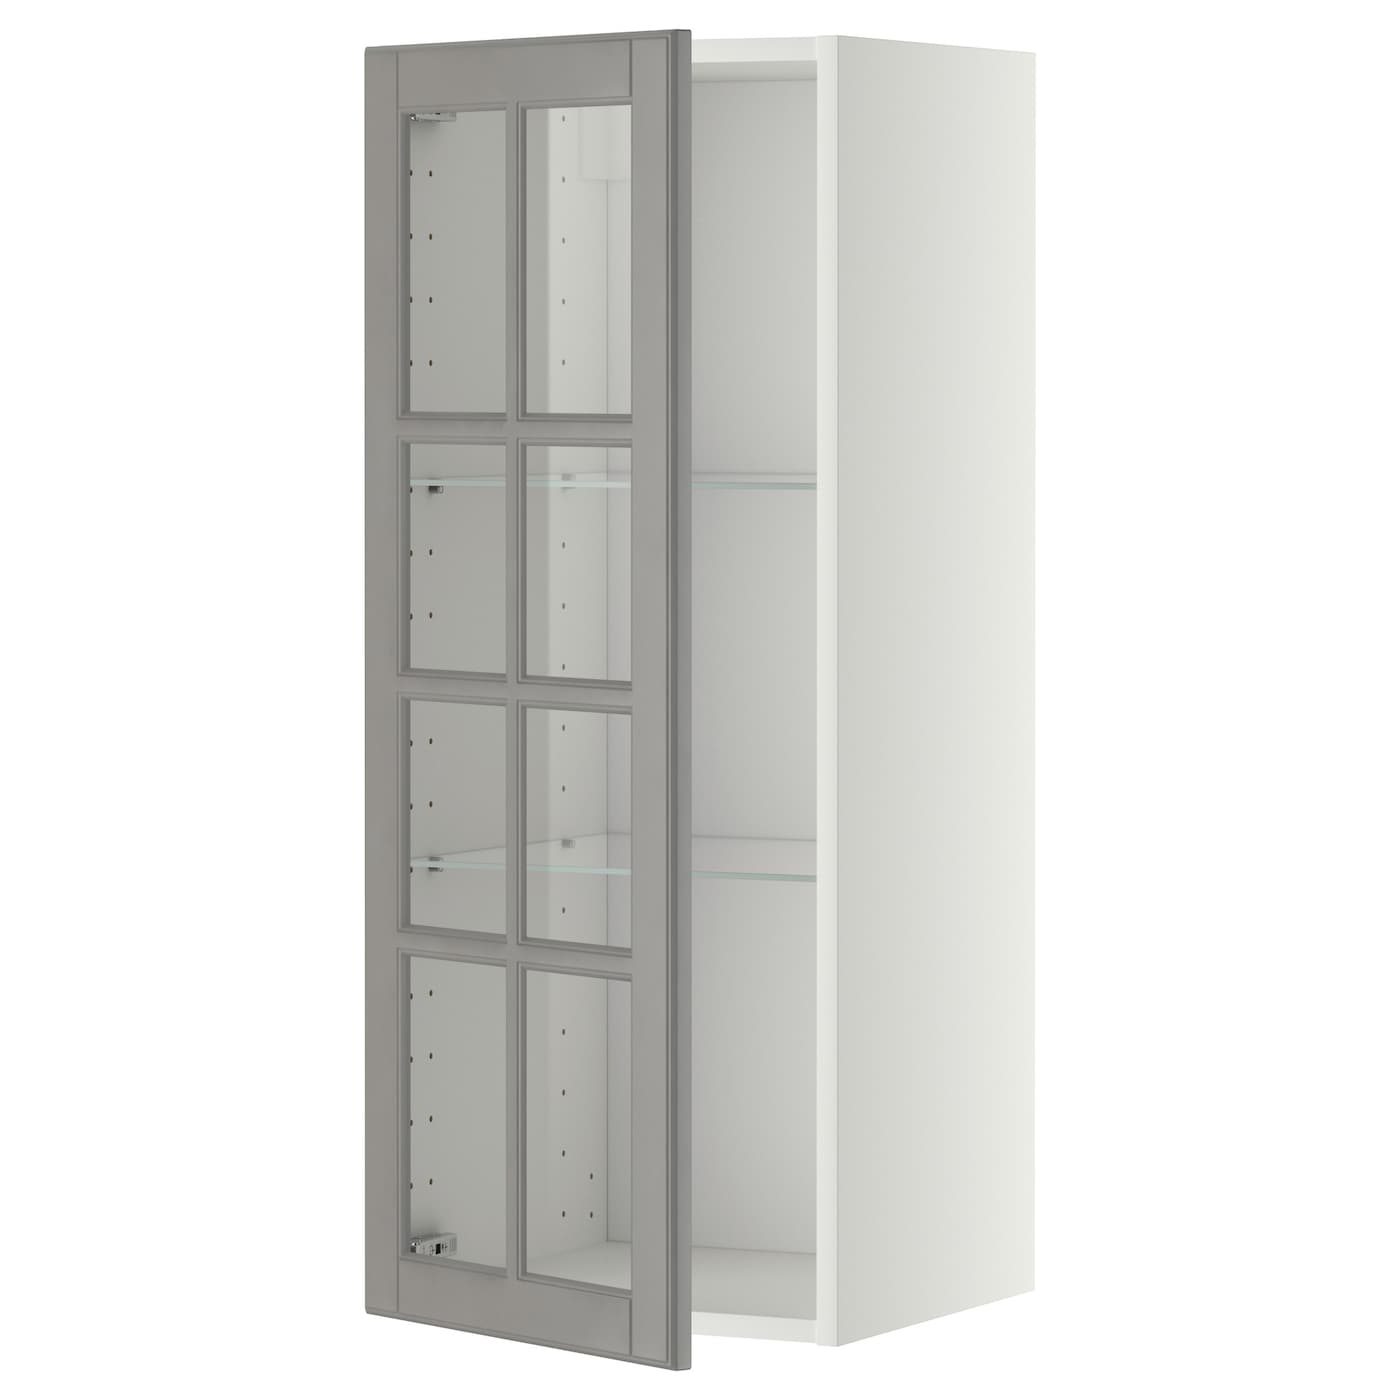 Metod wall cabinet w shelves glass door white bodbyn grey for Ikea glass door wall cabinet